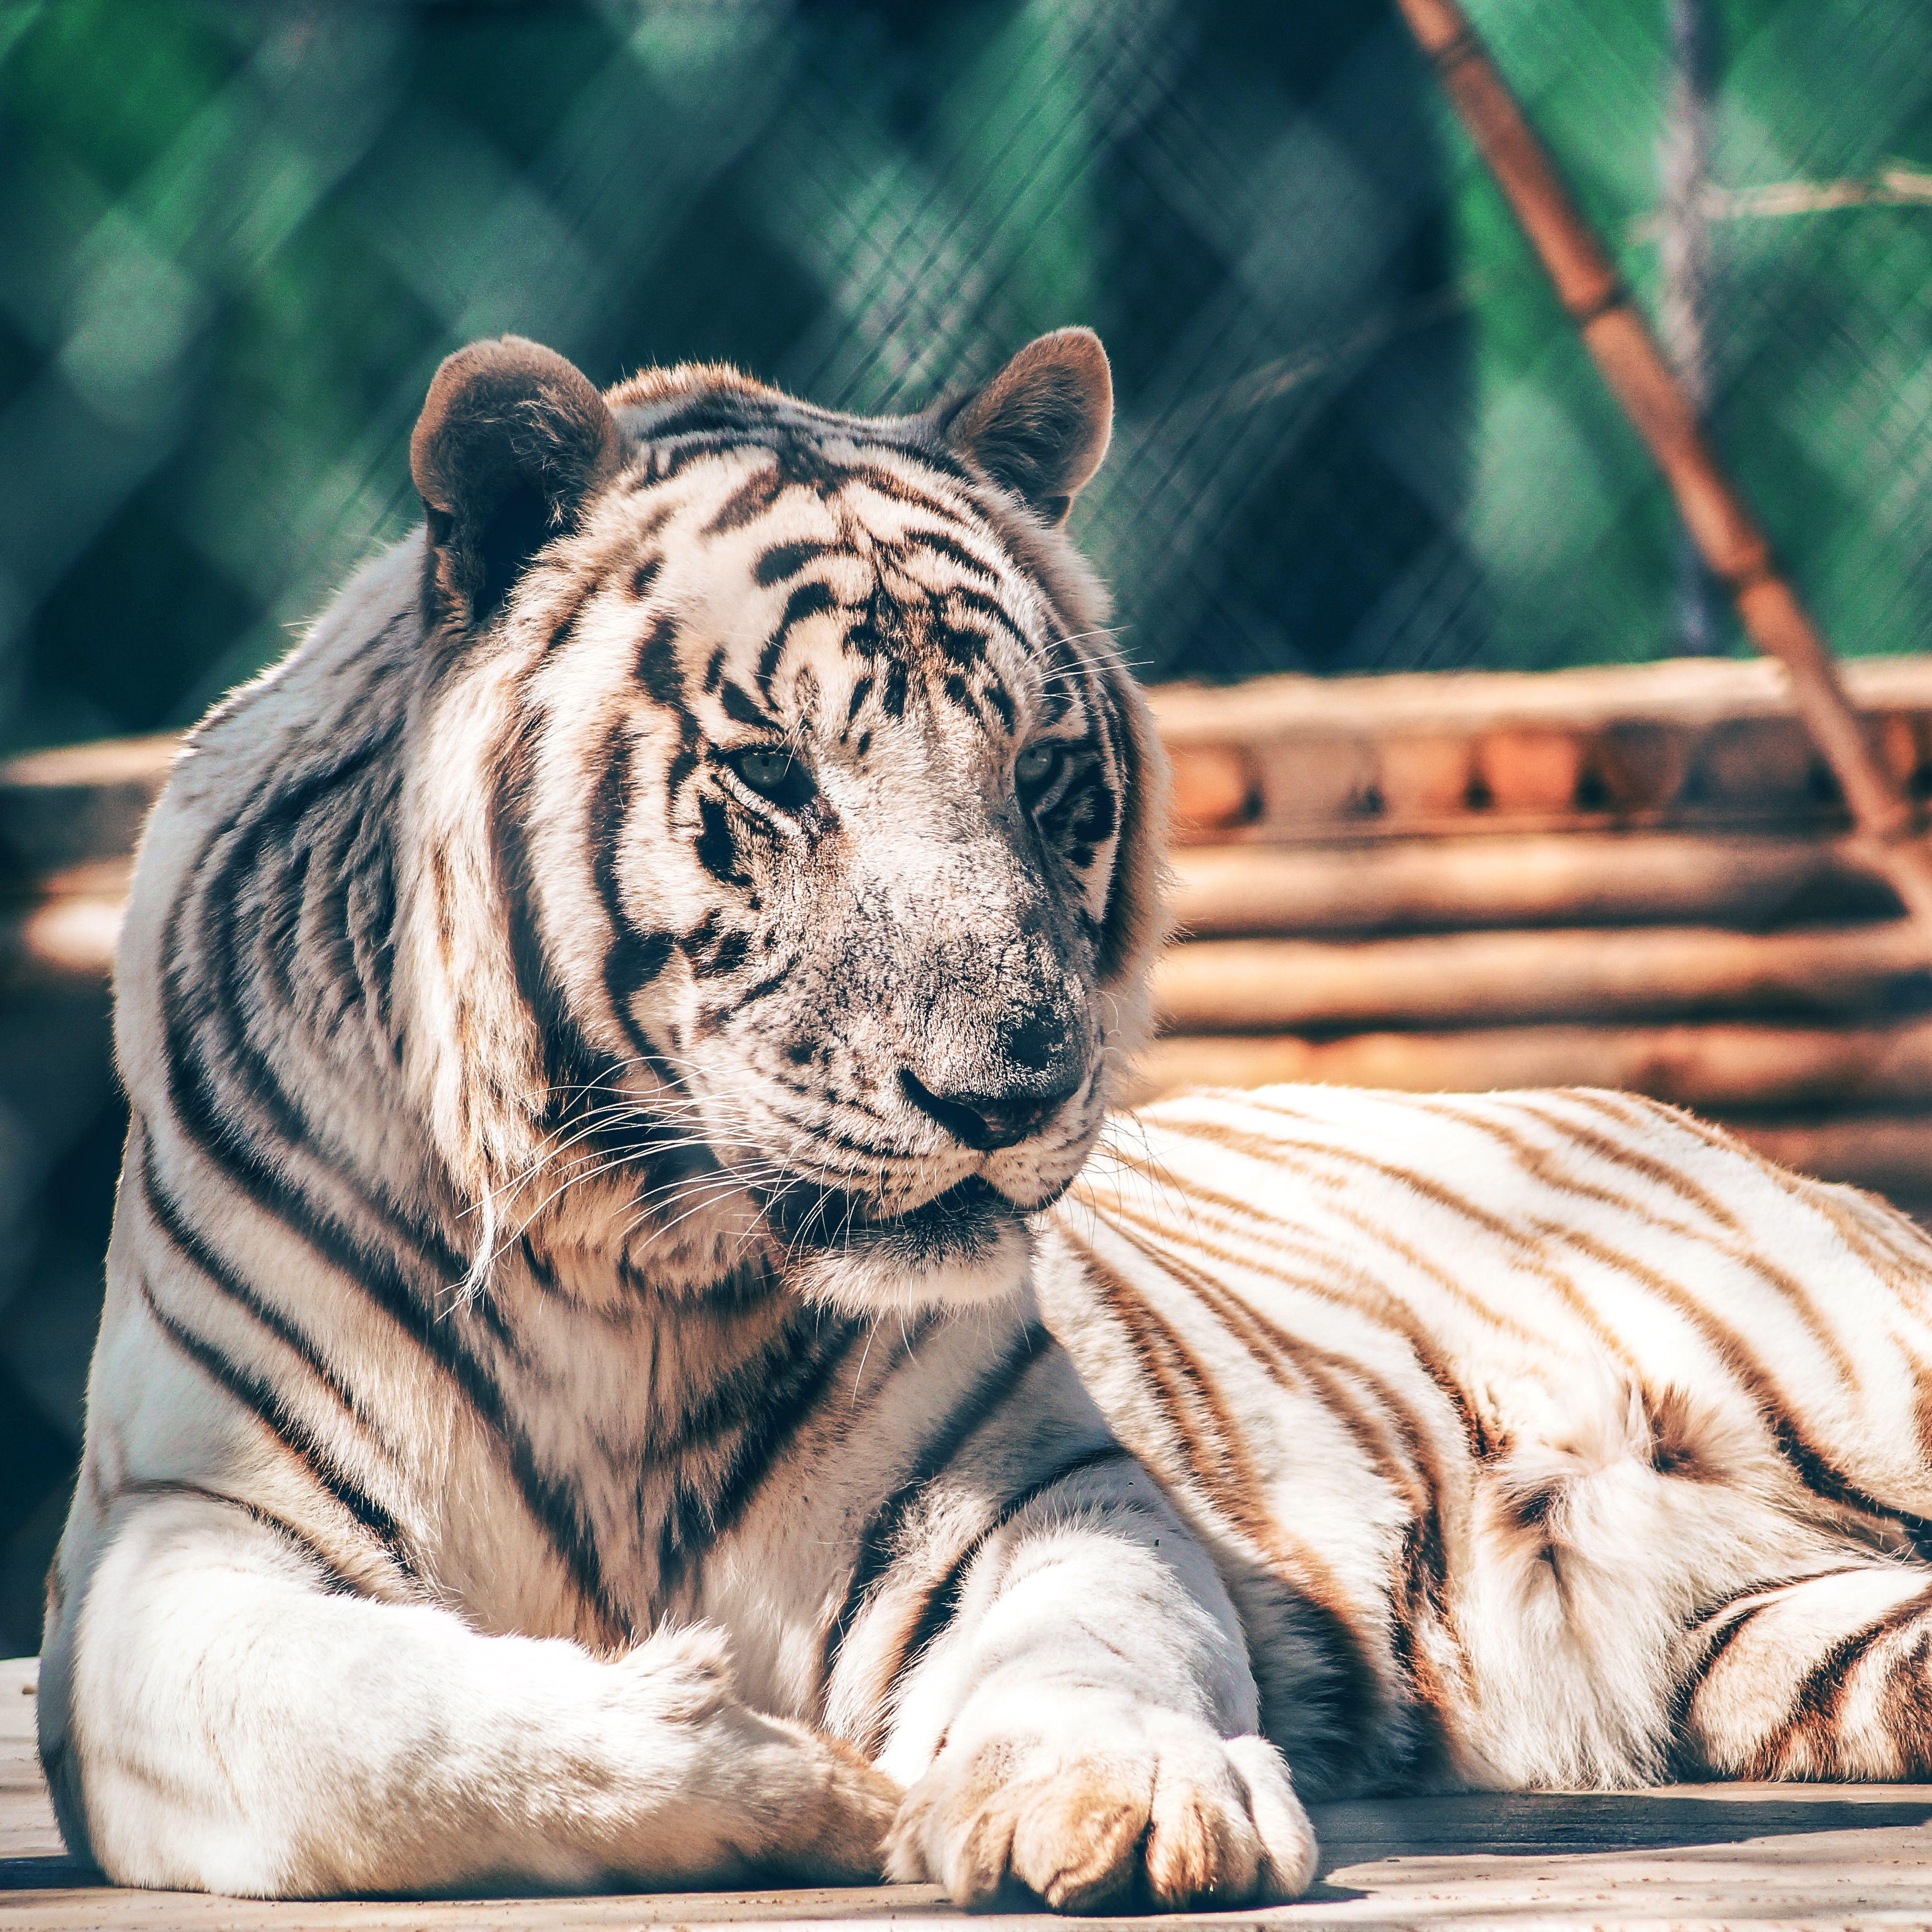 The zoos in the Carolinas are busy with educational offerings.